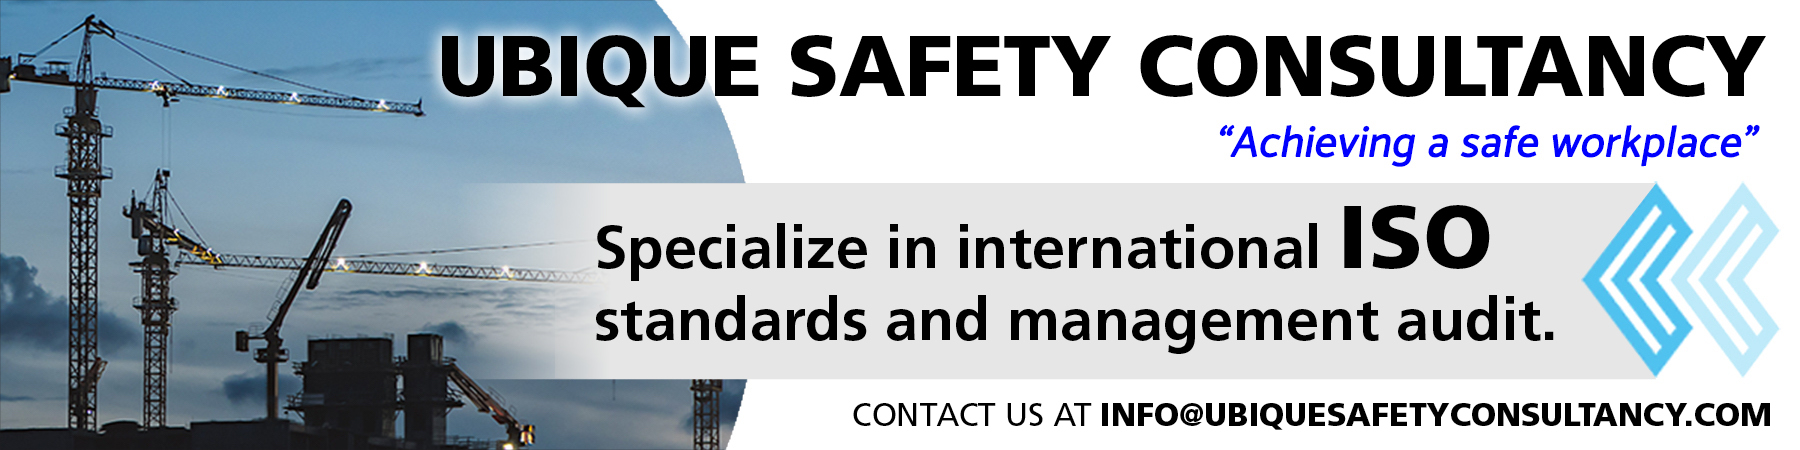 Ubique Safety Consultancy Marketplace Banner